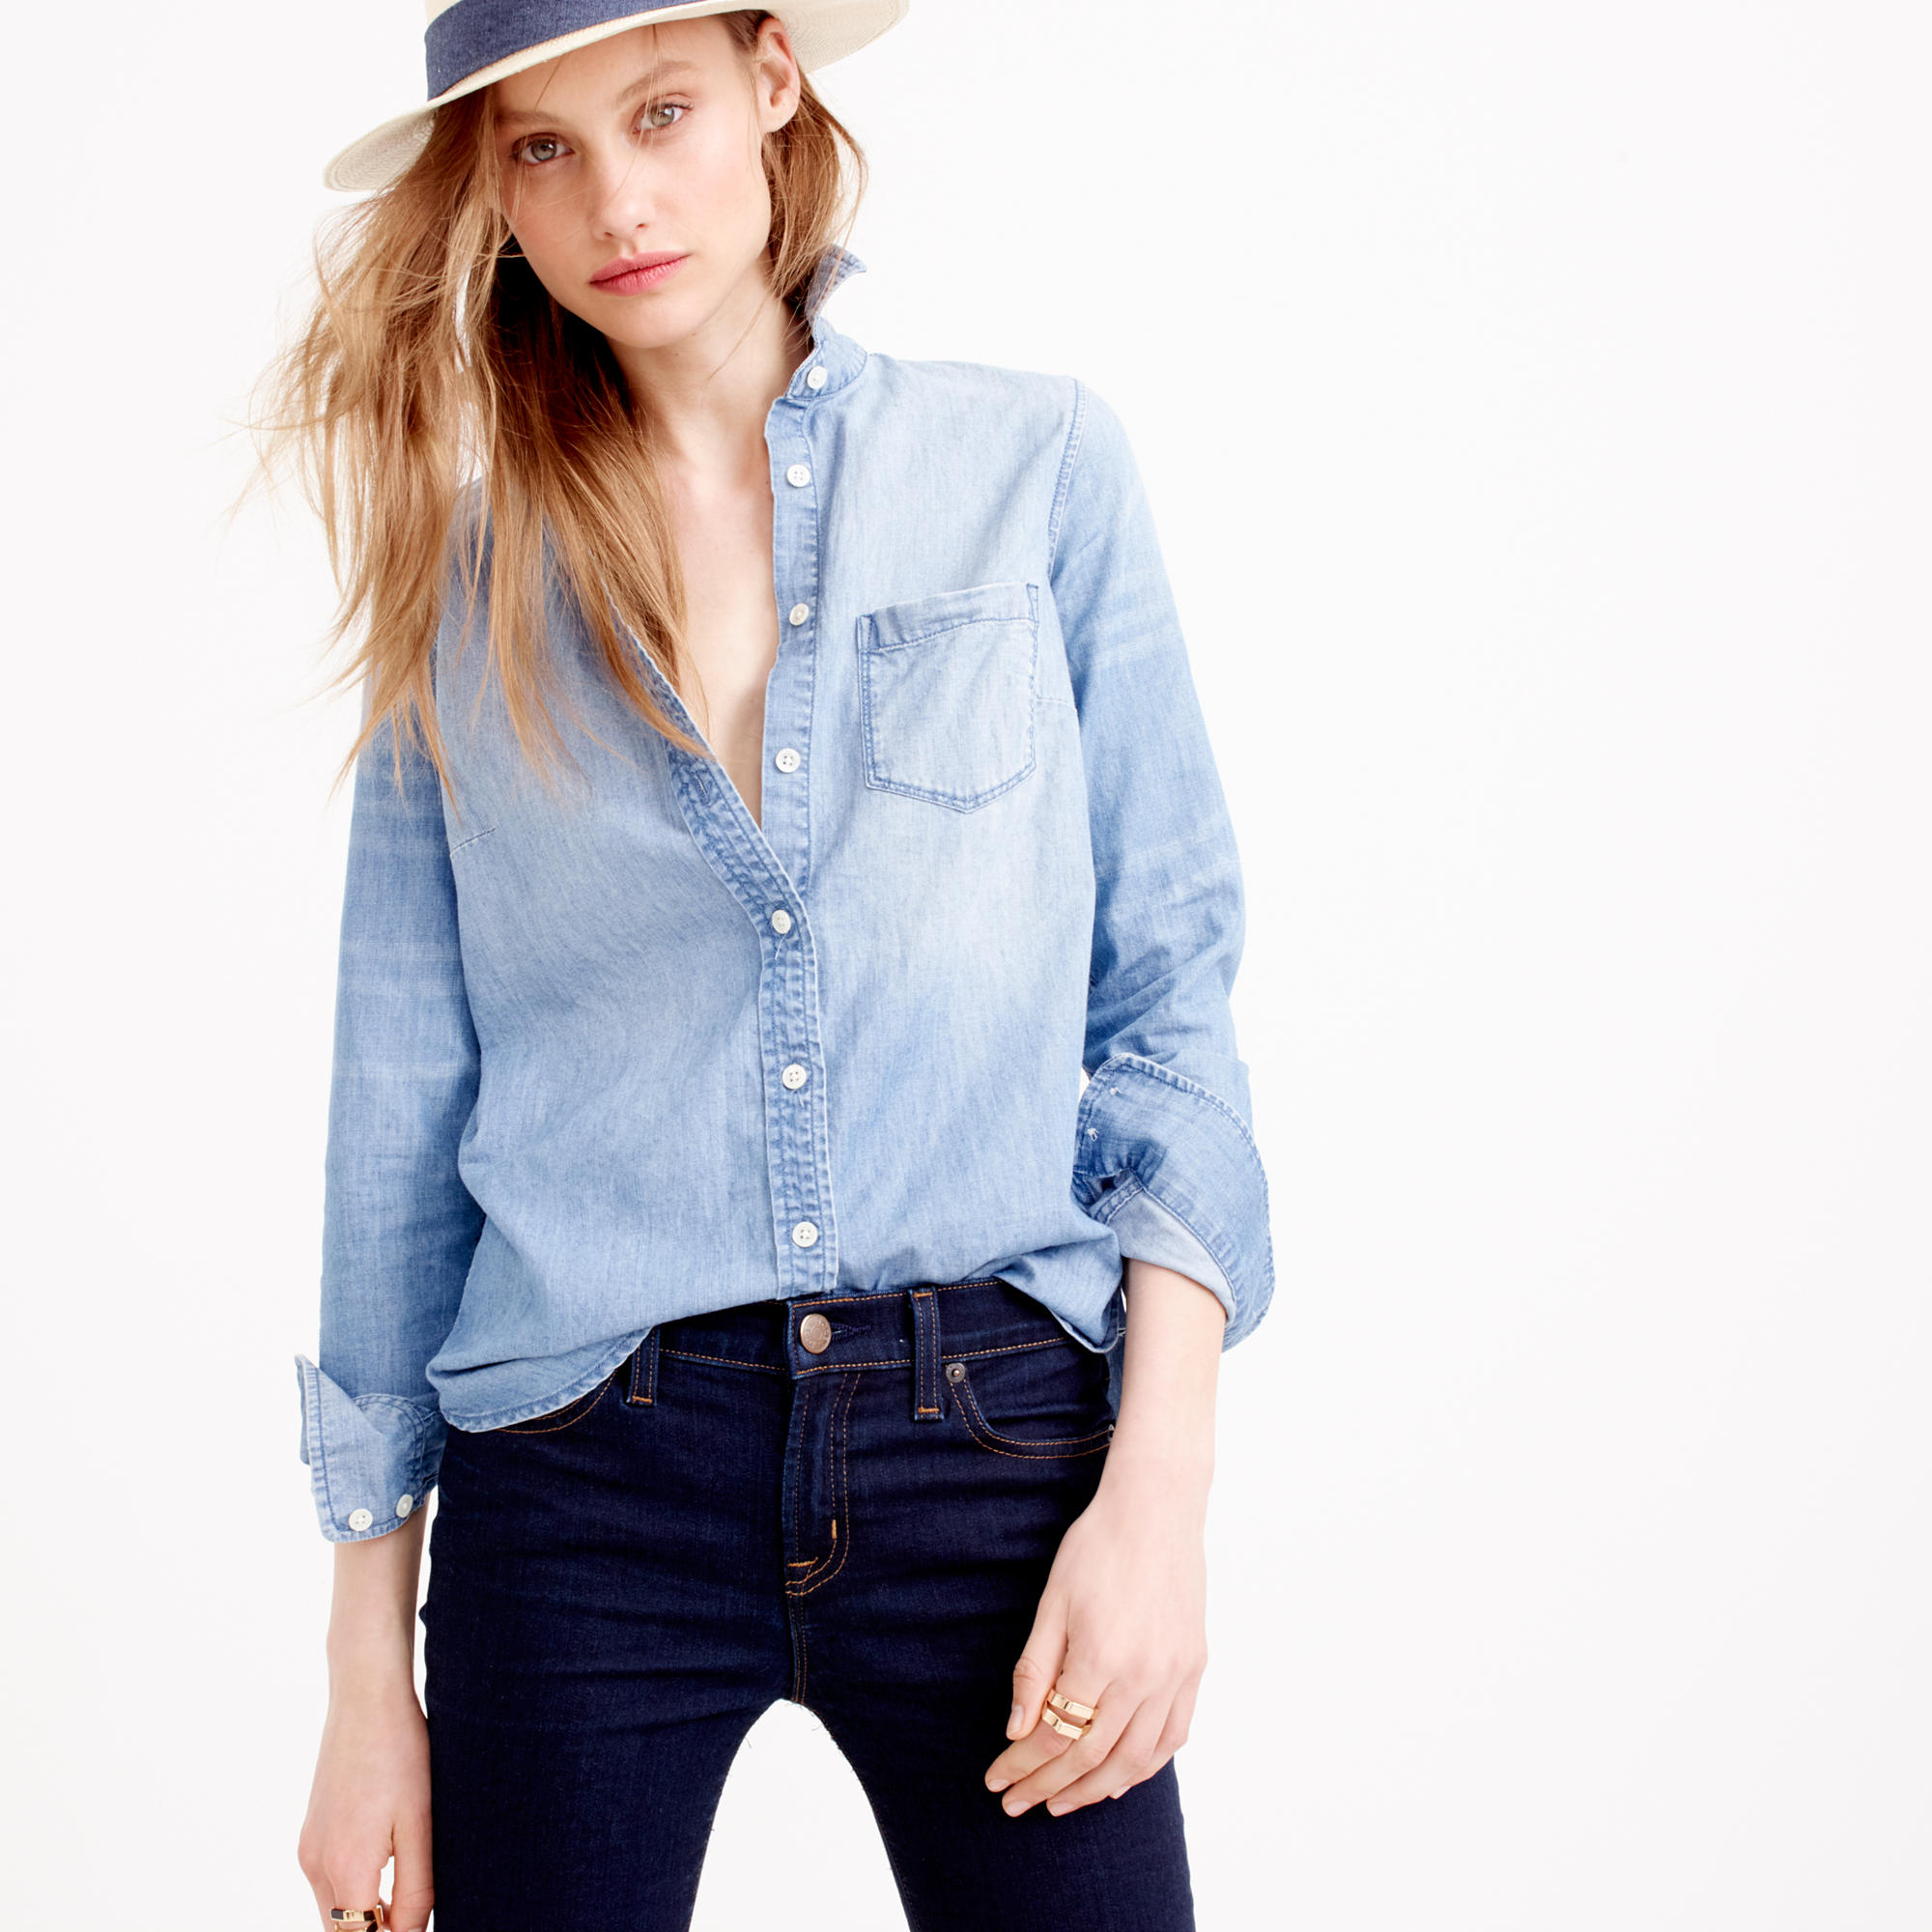 ca0e712e62 Softest Chambray Shirts For Fall. personal stylist. J.Crew  78